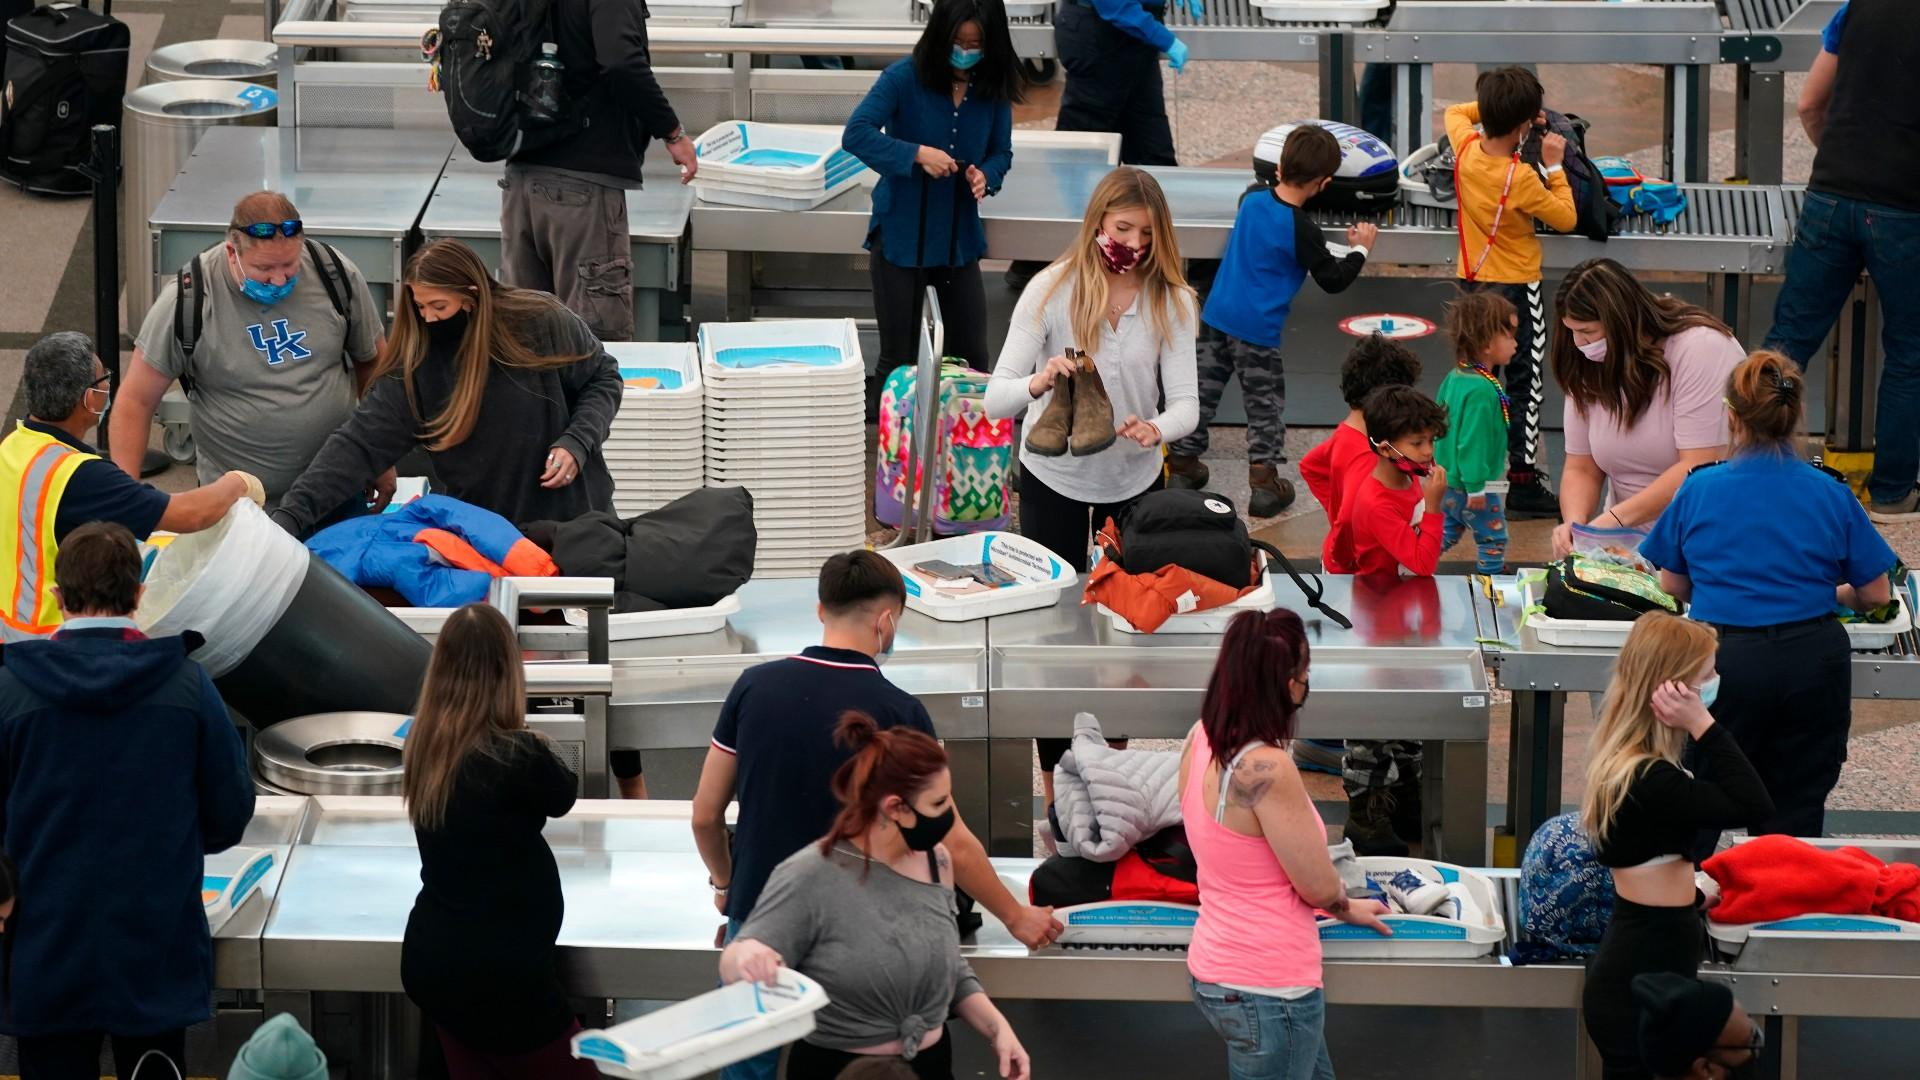 Travelers wear face masks while passing through the south security checkpoint in the main terminal of Denver International Airport Tuesday, Dec. 22, 2020, in Denver. (AP Photo / David Zalubowski)